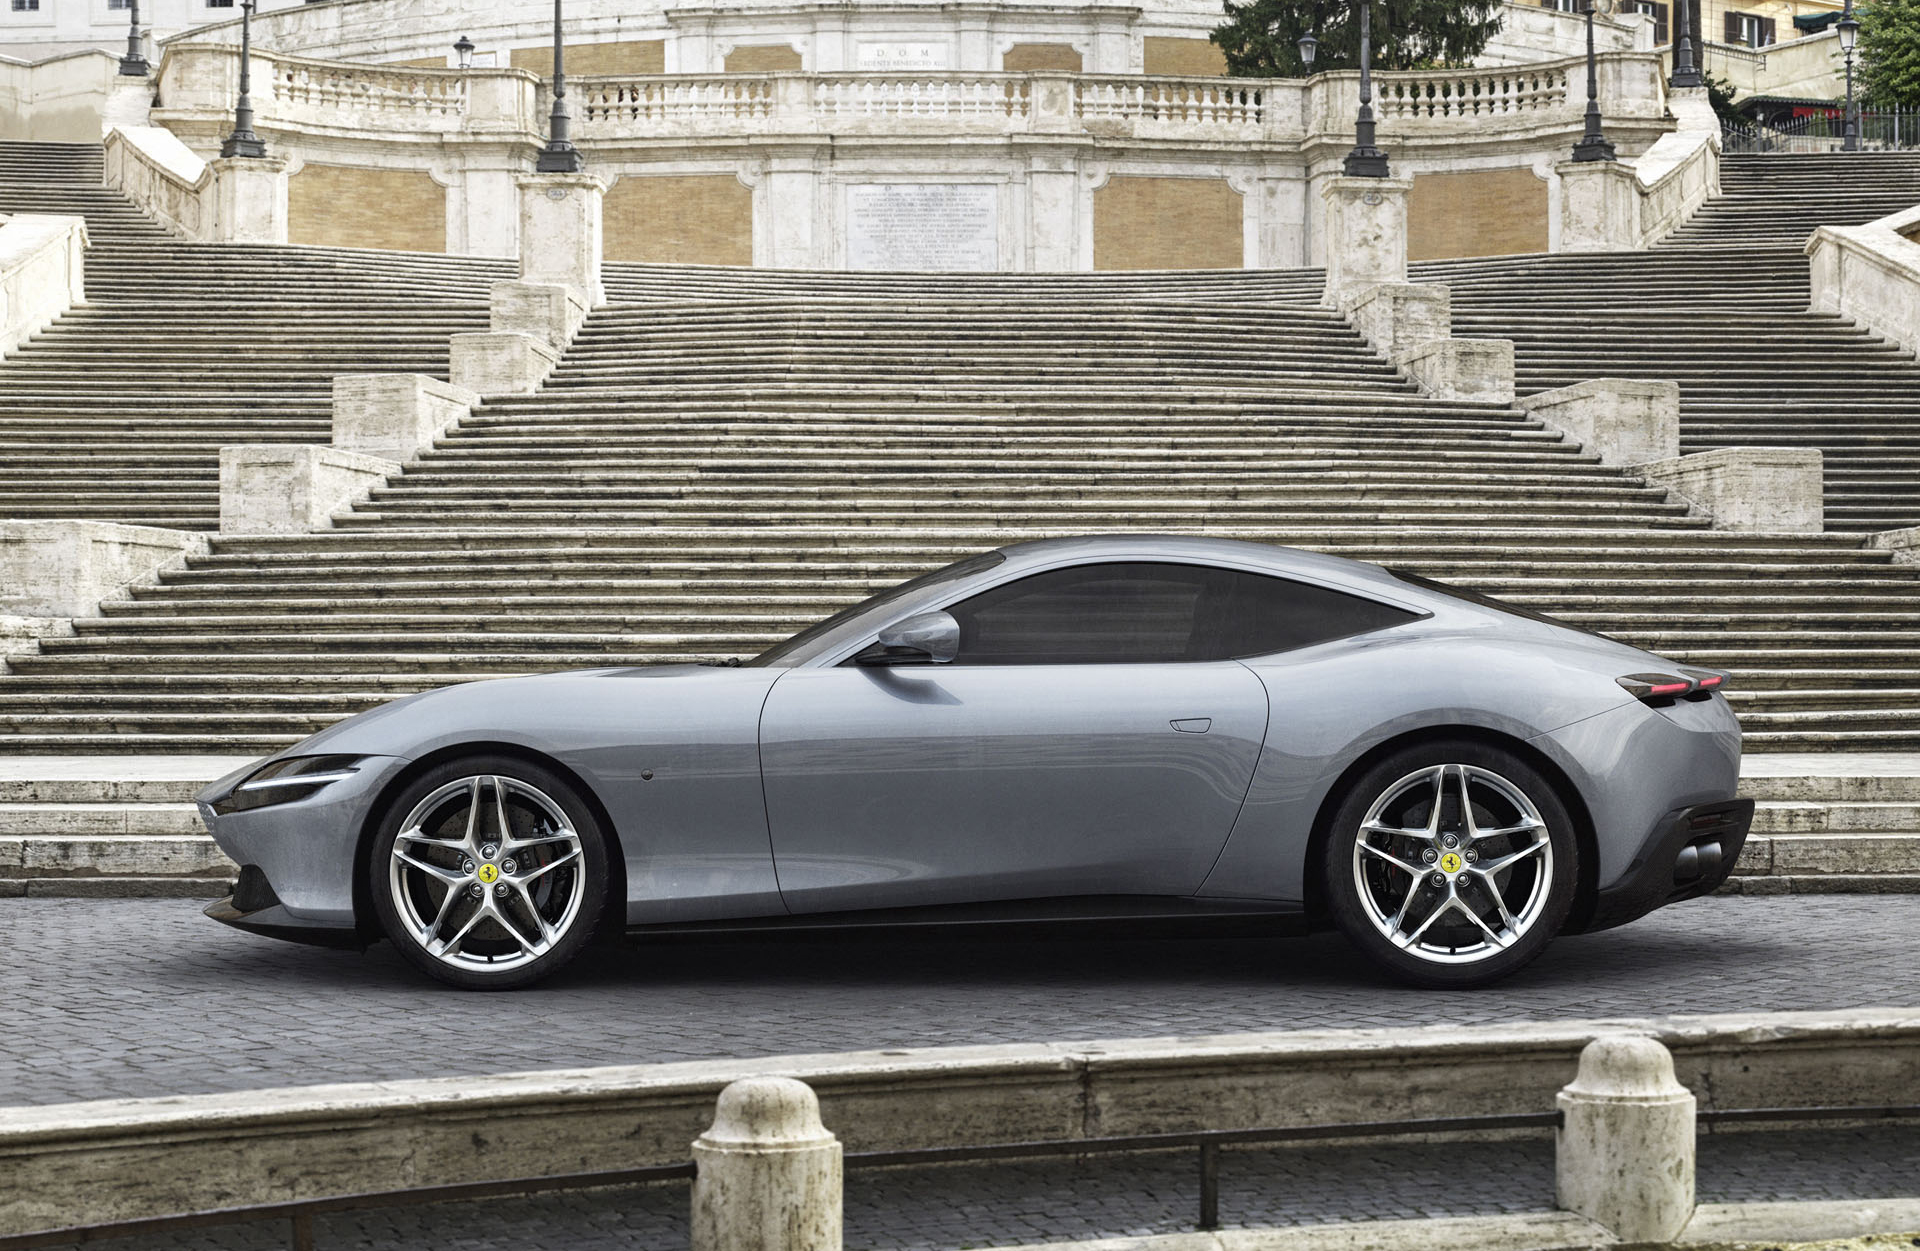 Ferrari S Mystery Coupe Revealed As The Roma